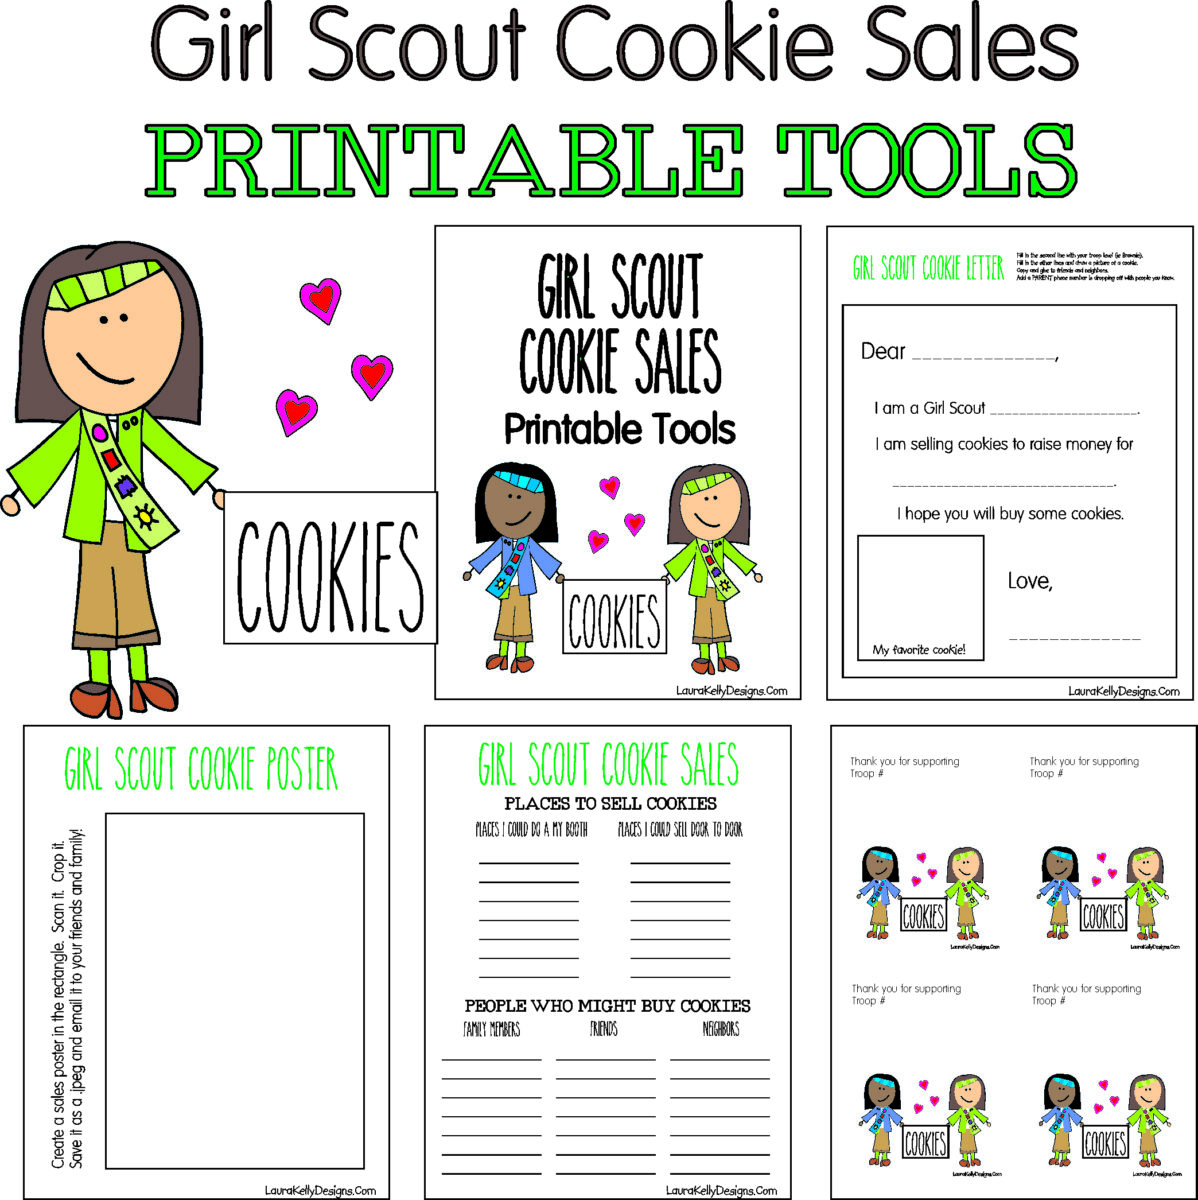 photo regarding Printable Tools known as Female Scout Cookie Revenue Absolutely free Printable Equipment - Laura Kellys